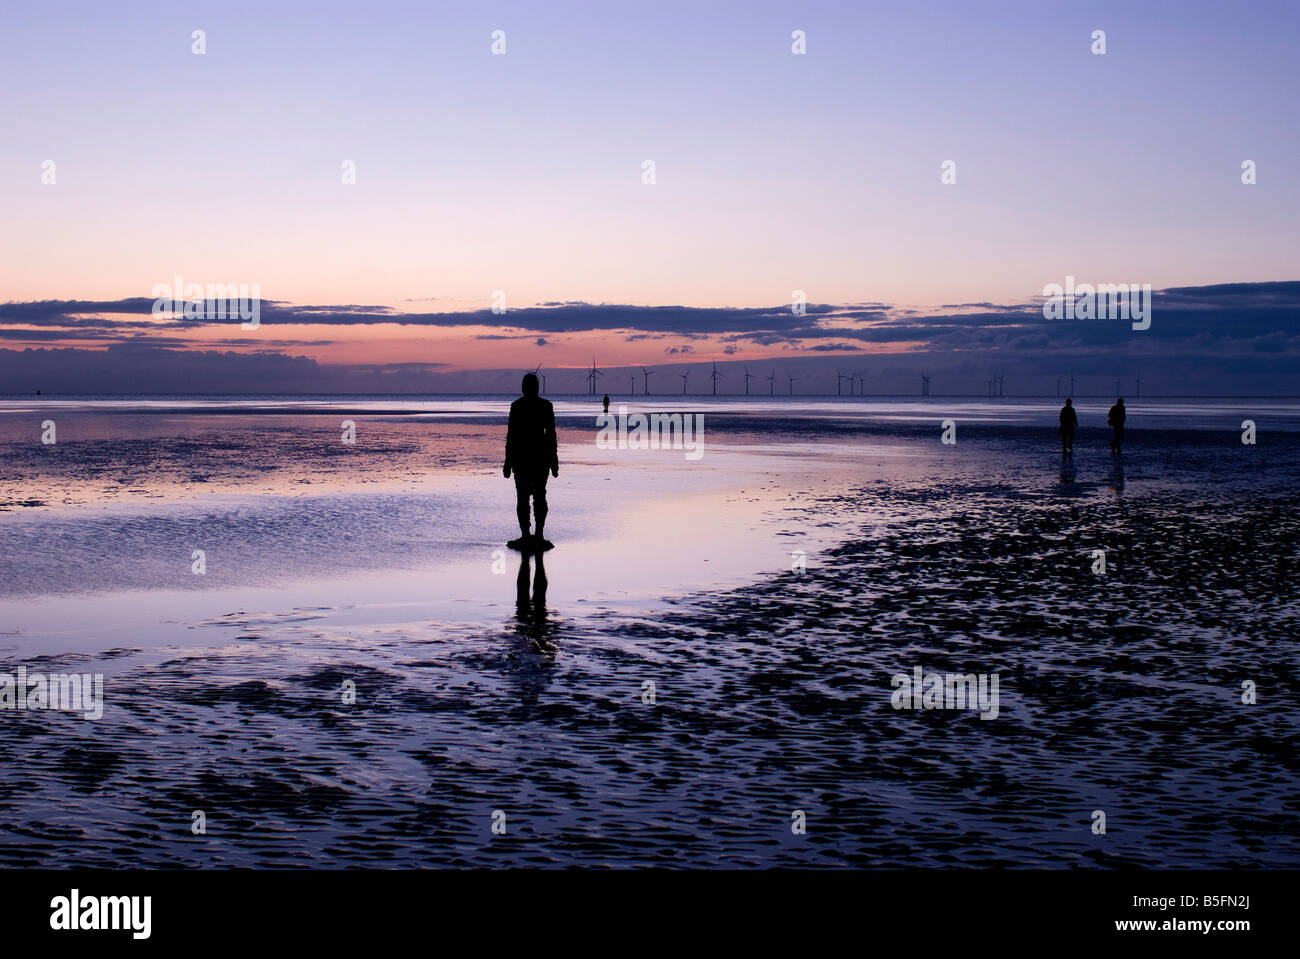 Antony Gormley  Crosby Beach Liverpool England U K - Stock Image